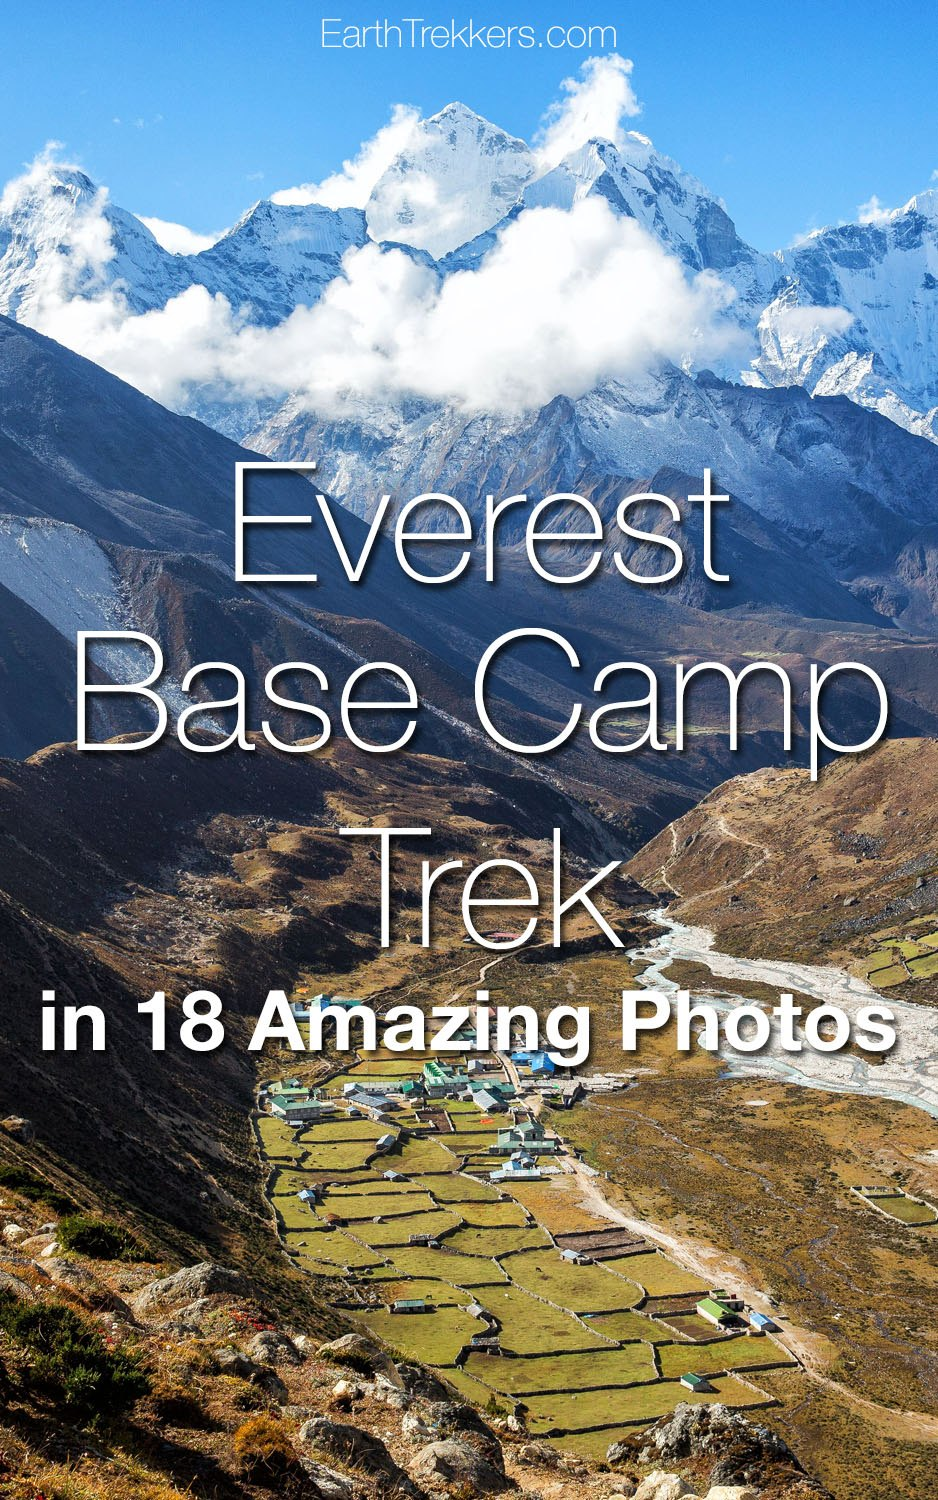 Everest base camp trek in photos